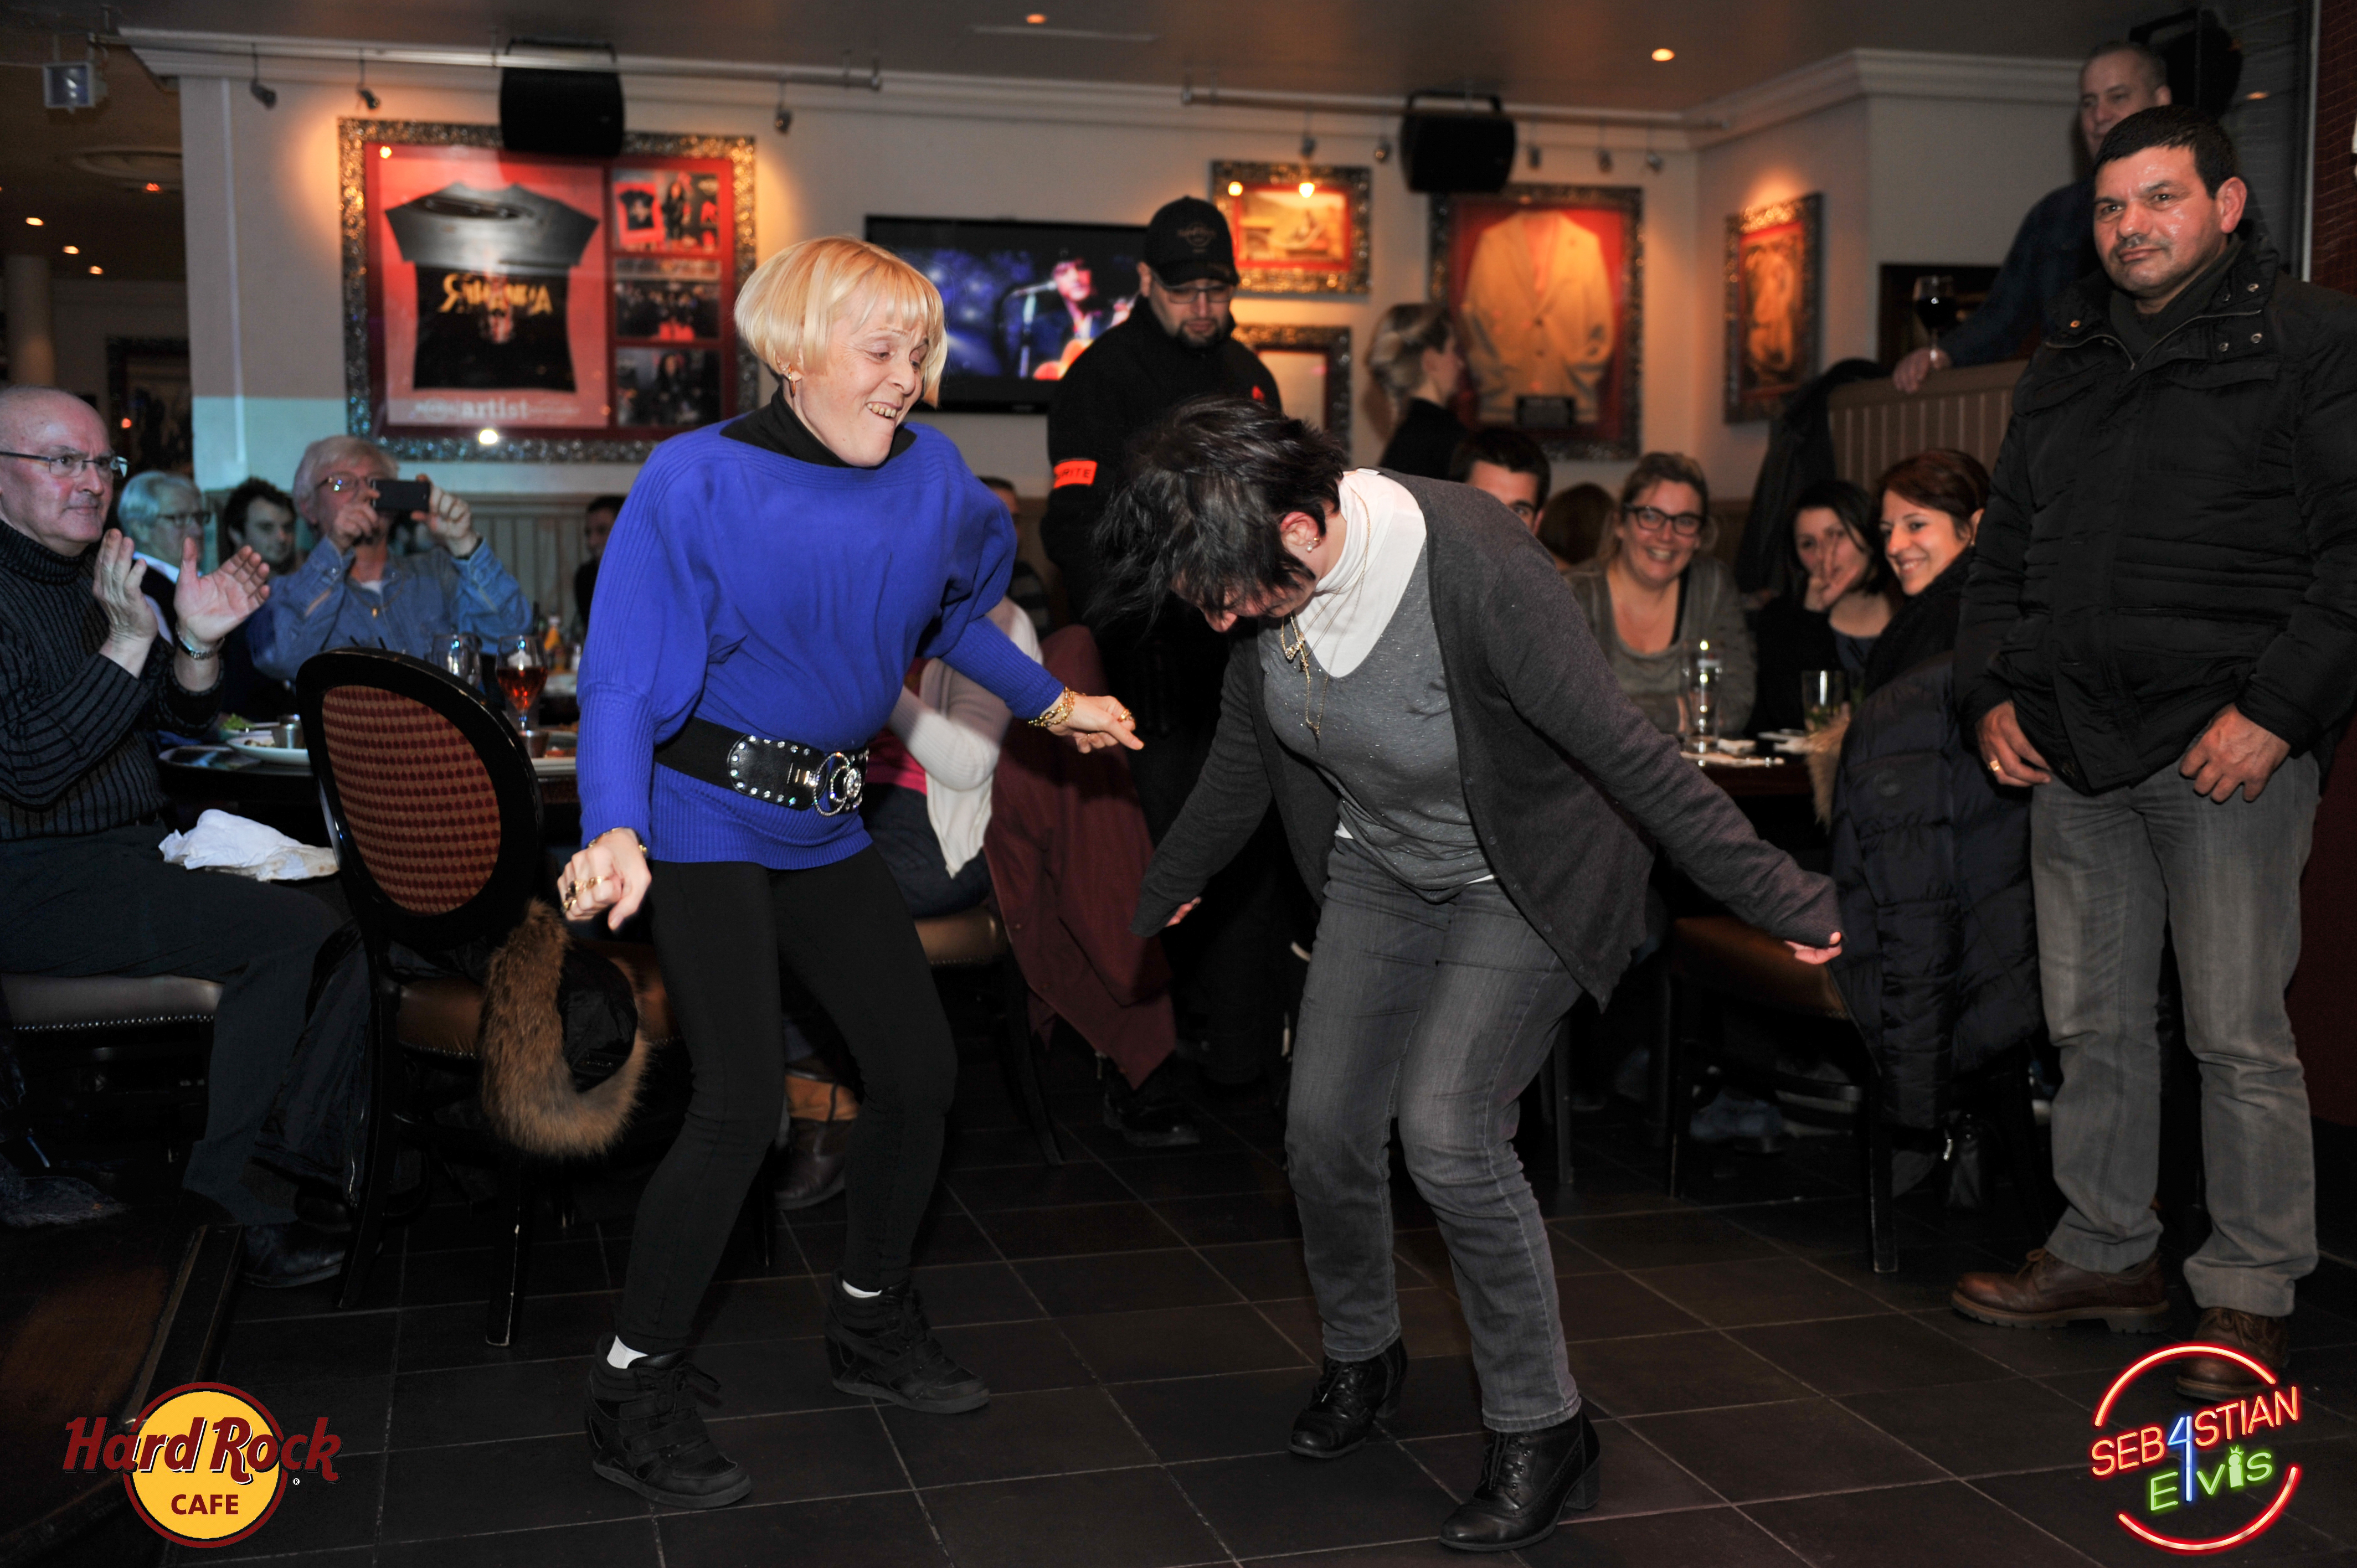 hard-rock-cafe-paris-elvis-night-27 janvier-2016-sebastian-for-elvis-facebook-memorial-show-0054